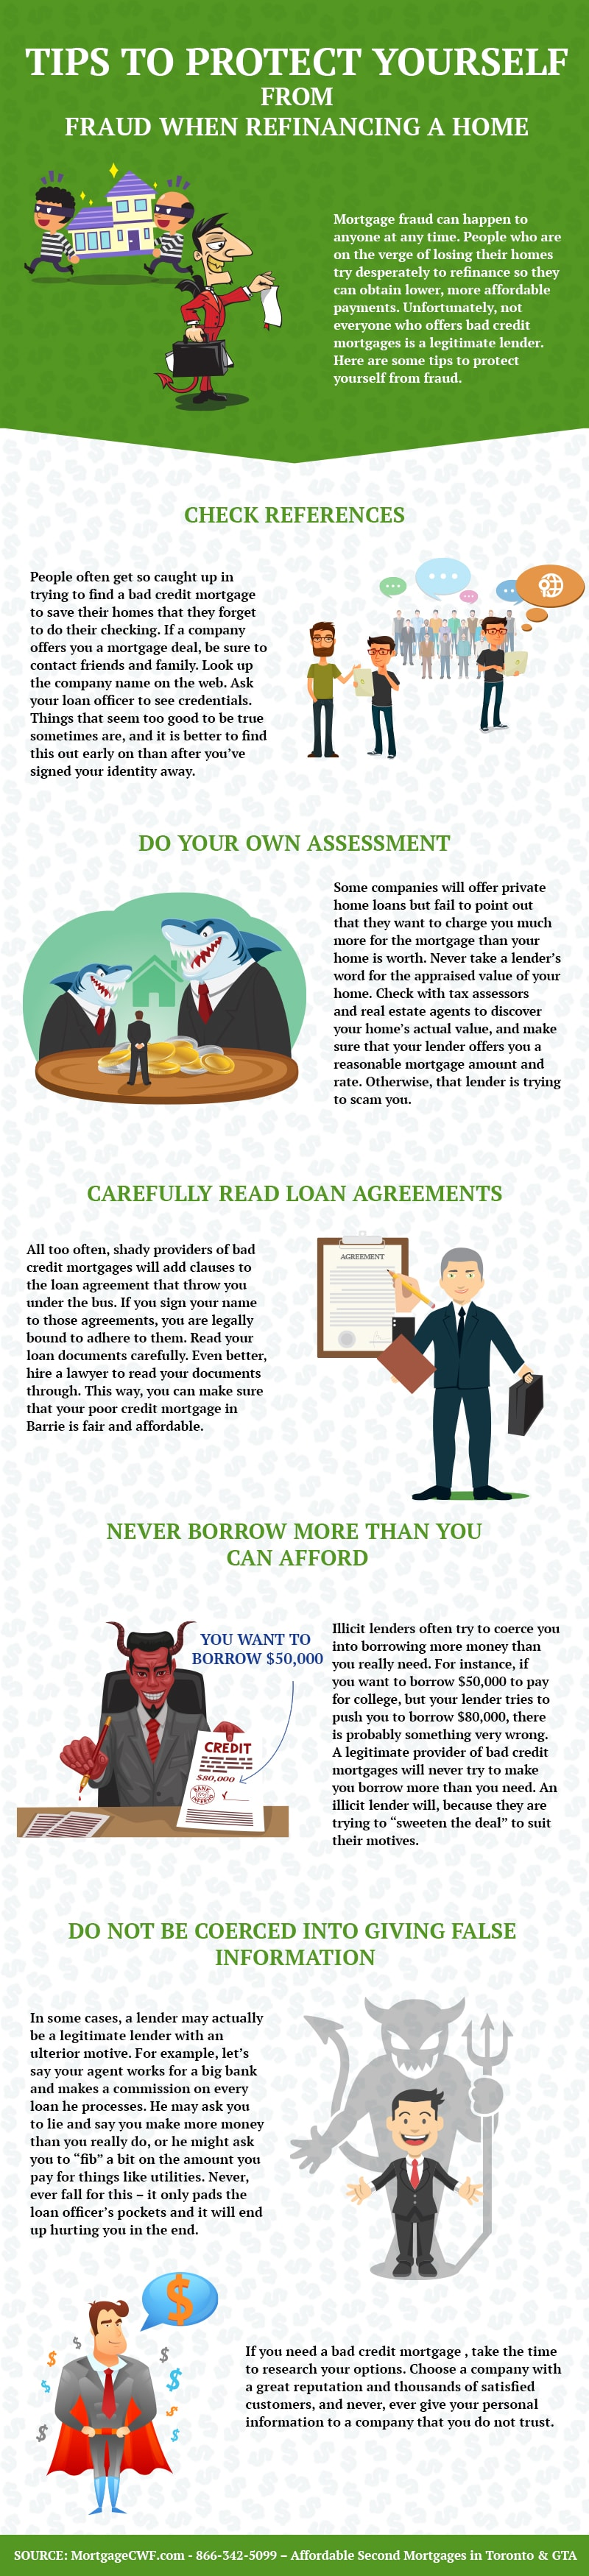 Tips to Protect Yourself from Fraud when Refinancing a Home